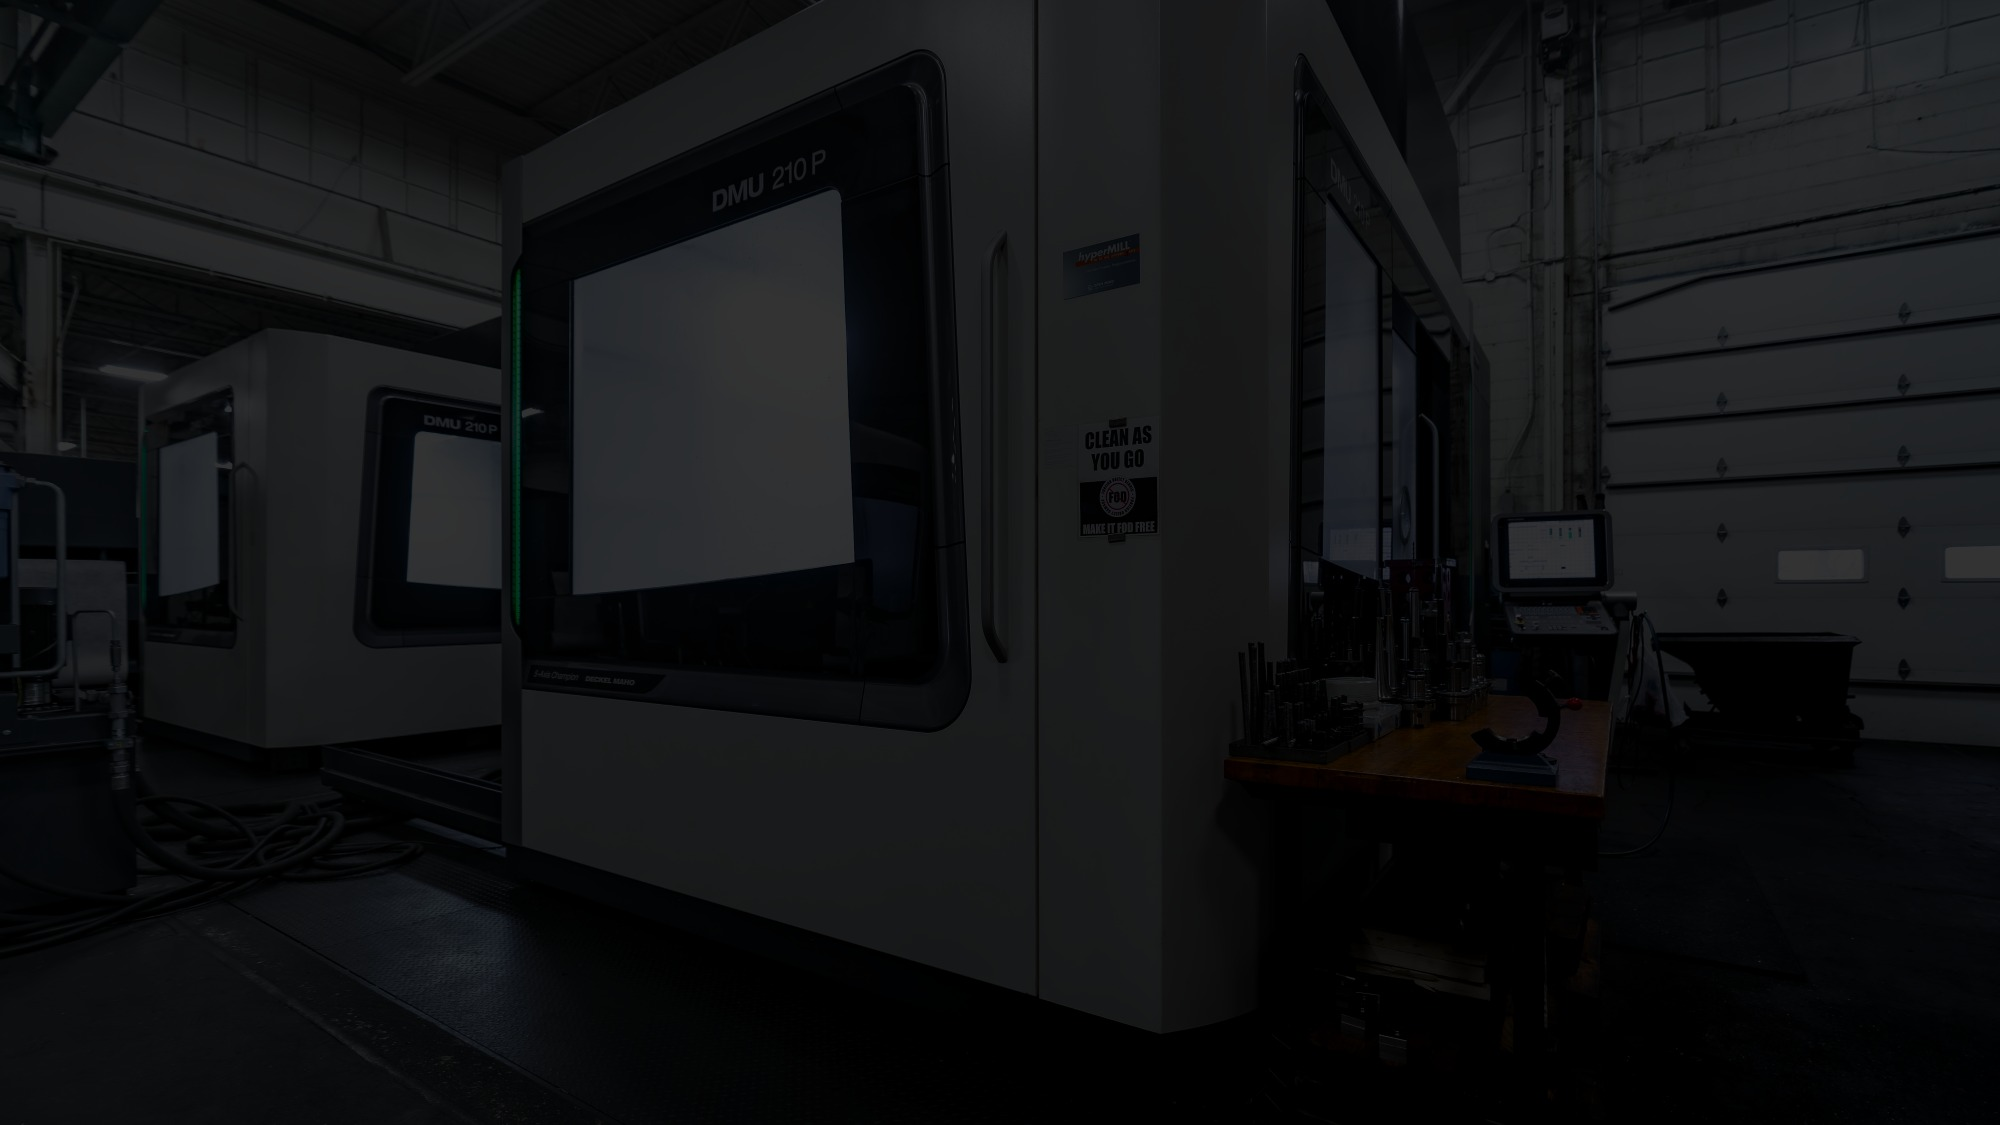 //precisionmold.com/wp-content/uploads/2020/06/DMU-210-Thumbnail-scaled.jpg